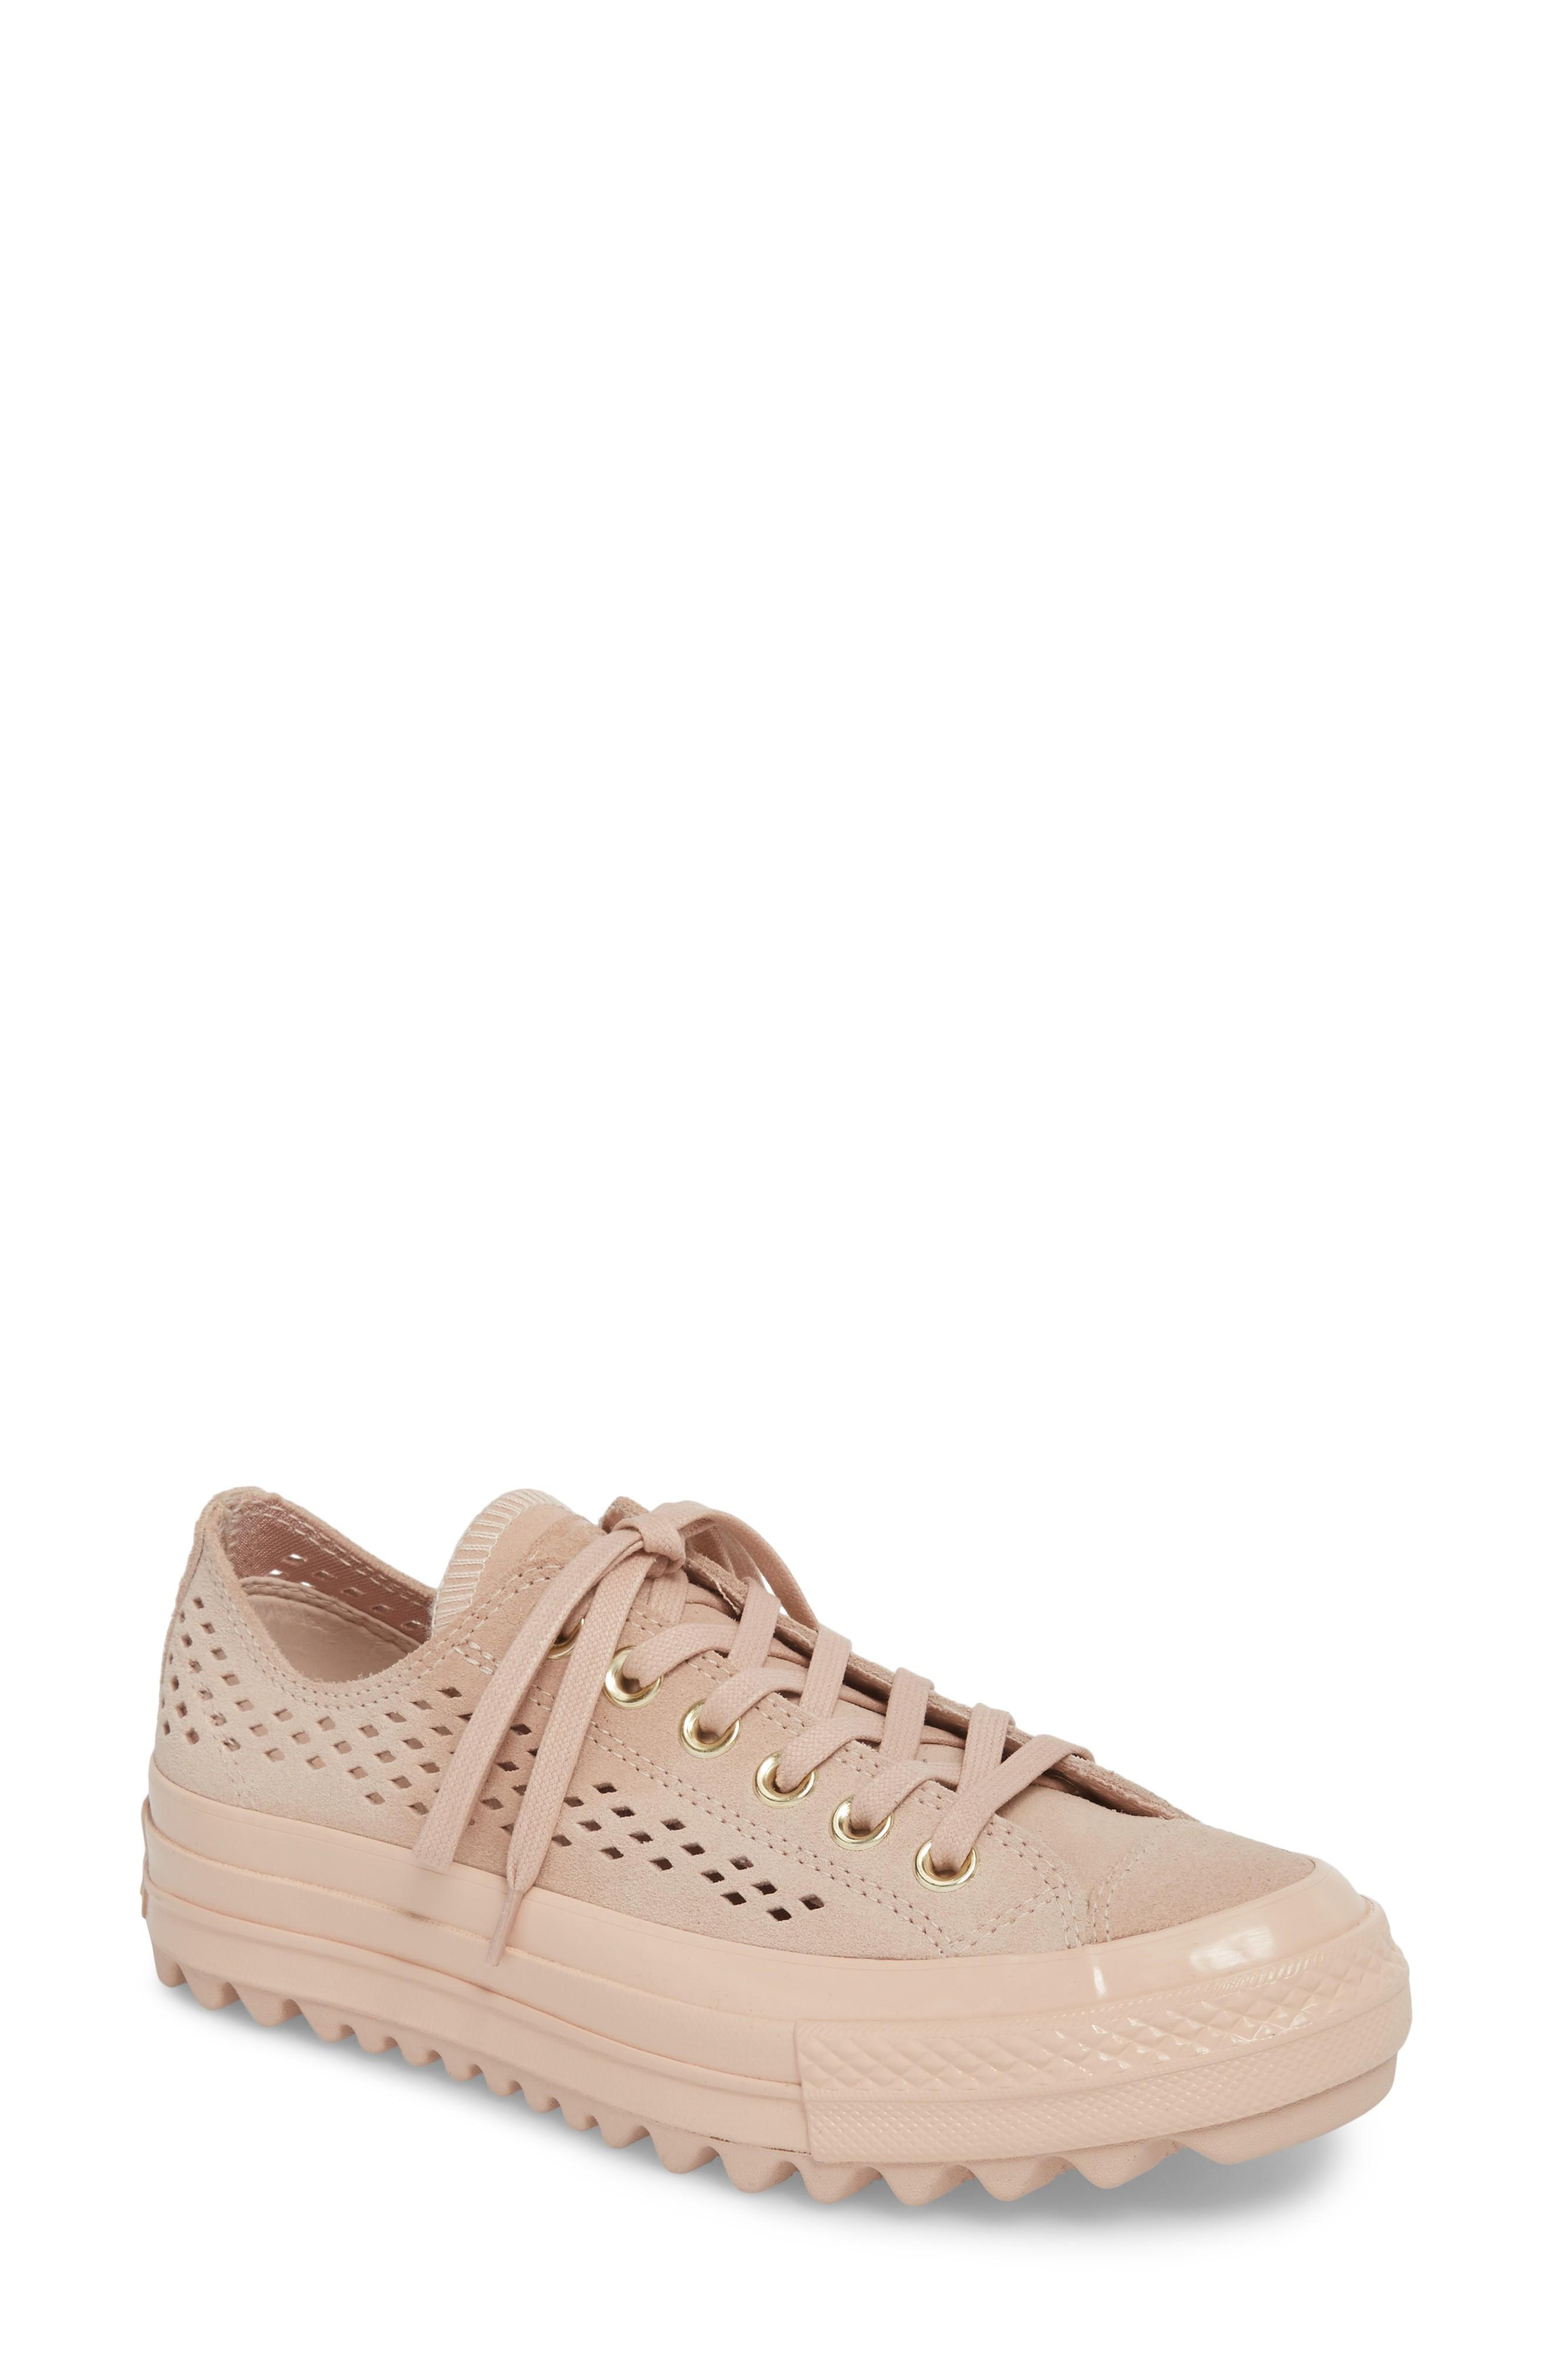 632800c938d6 Converse Chuck Taylor All Star Lift Ripple Sneaker In Particle Beige ...